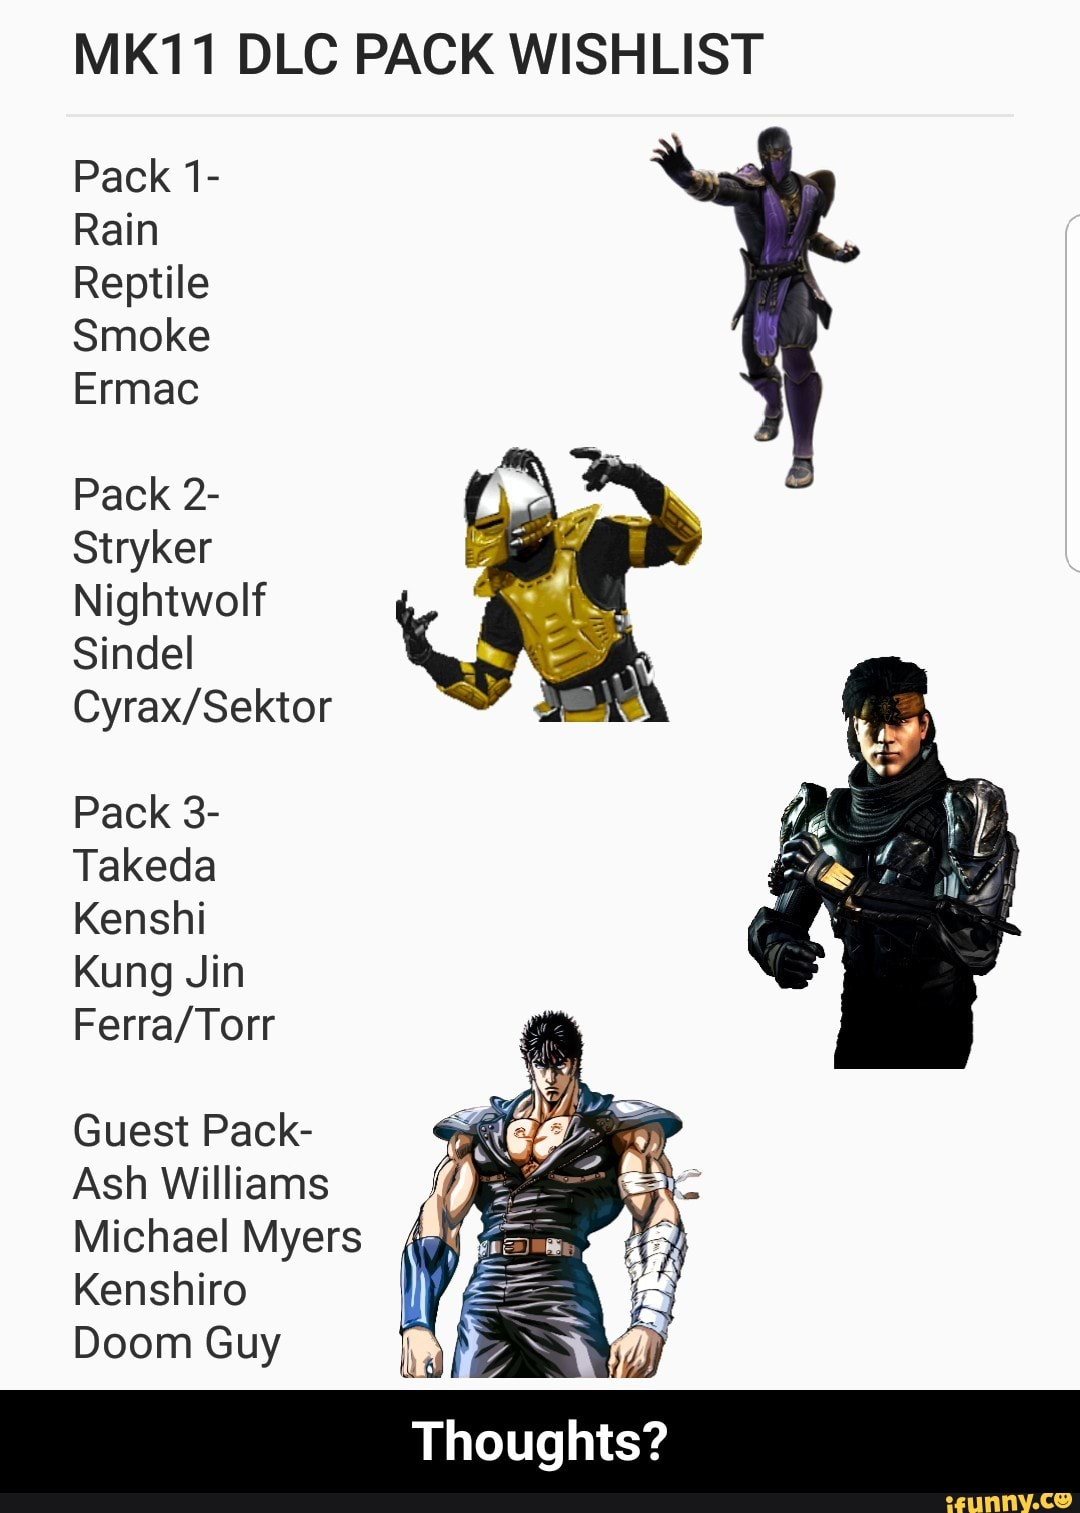 MK11 DLC PACK WISHLIST Pack 1- Rain Reptile Smoke Ermac Pack